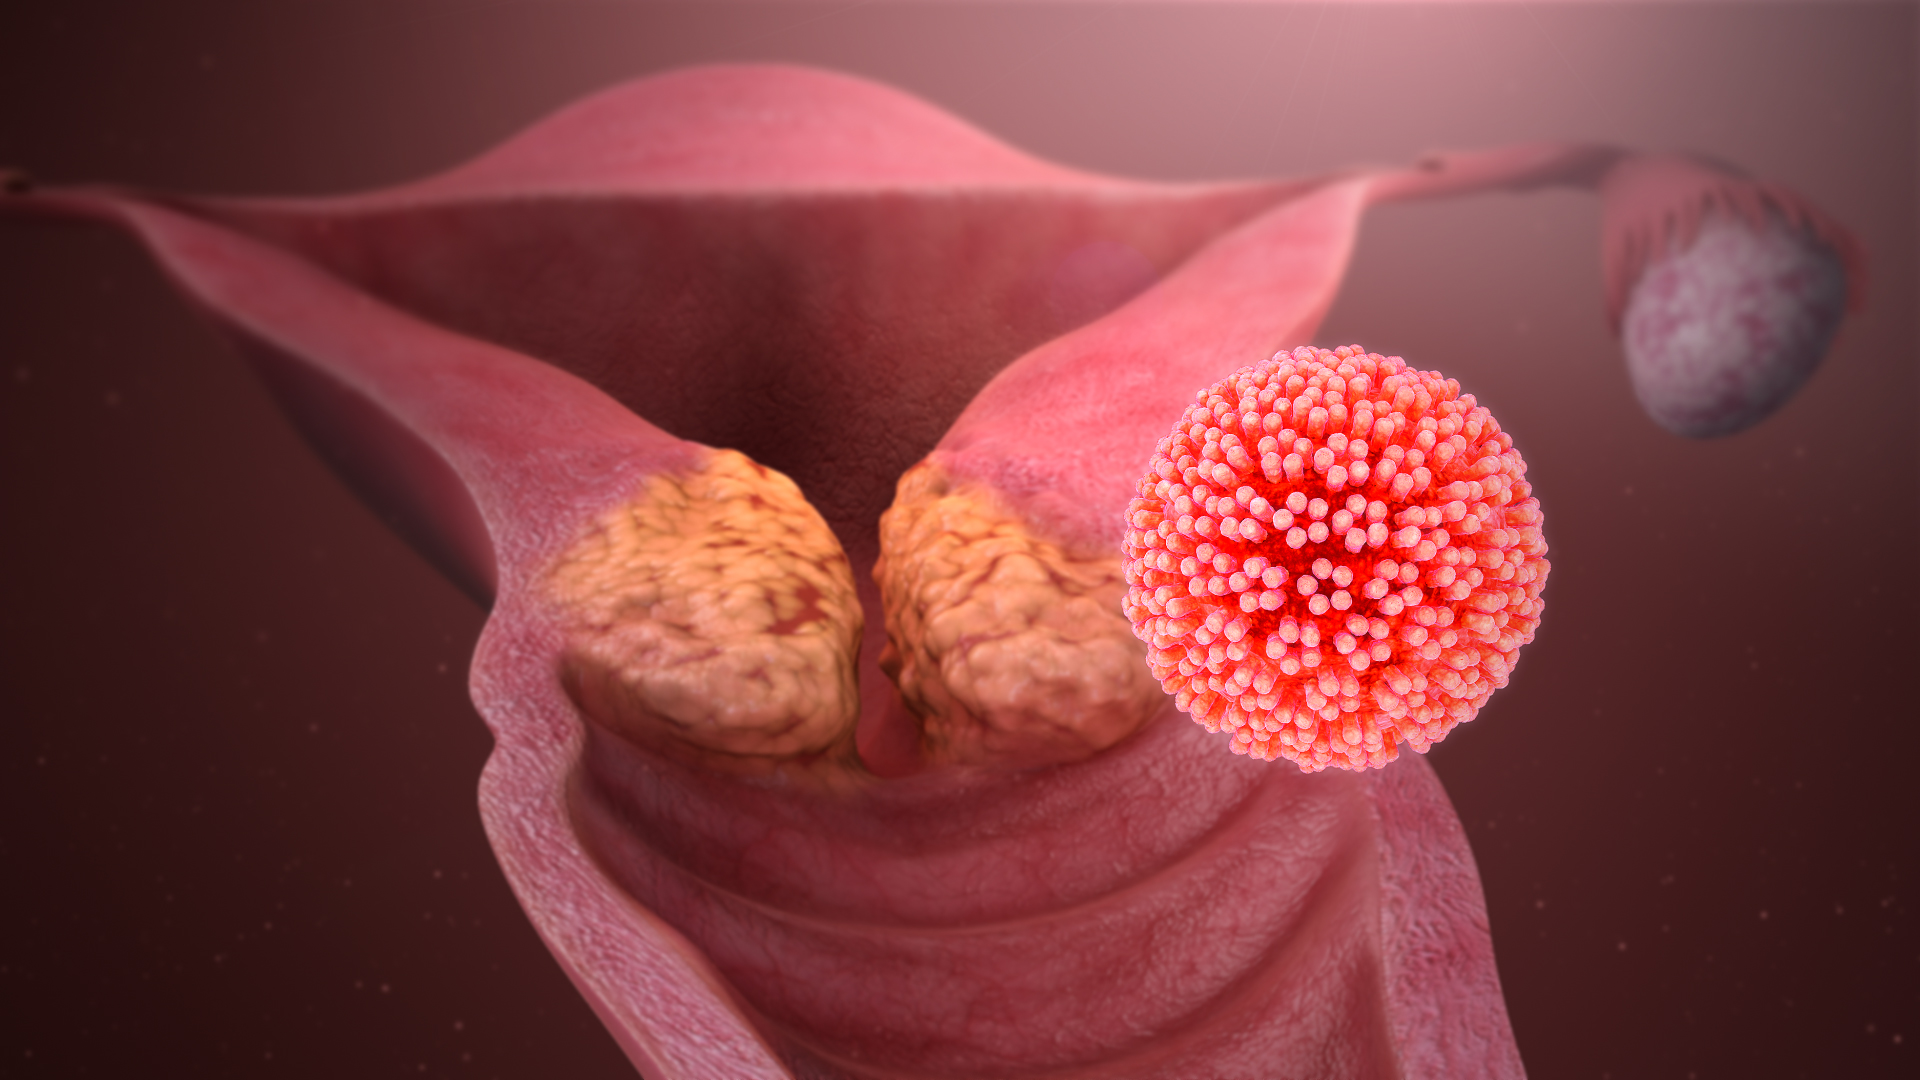 Hpv virus and kissing. Throat Cancer and HPV hpv impfung linz